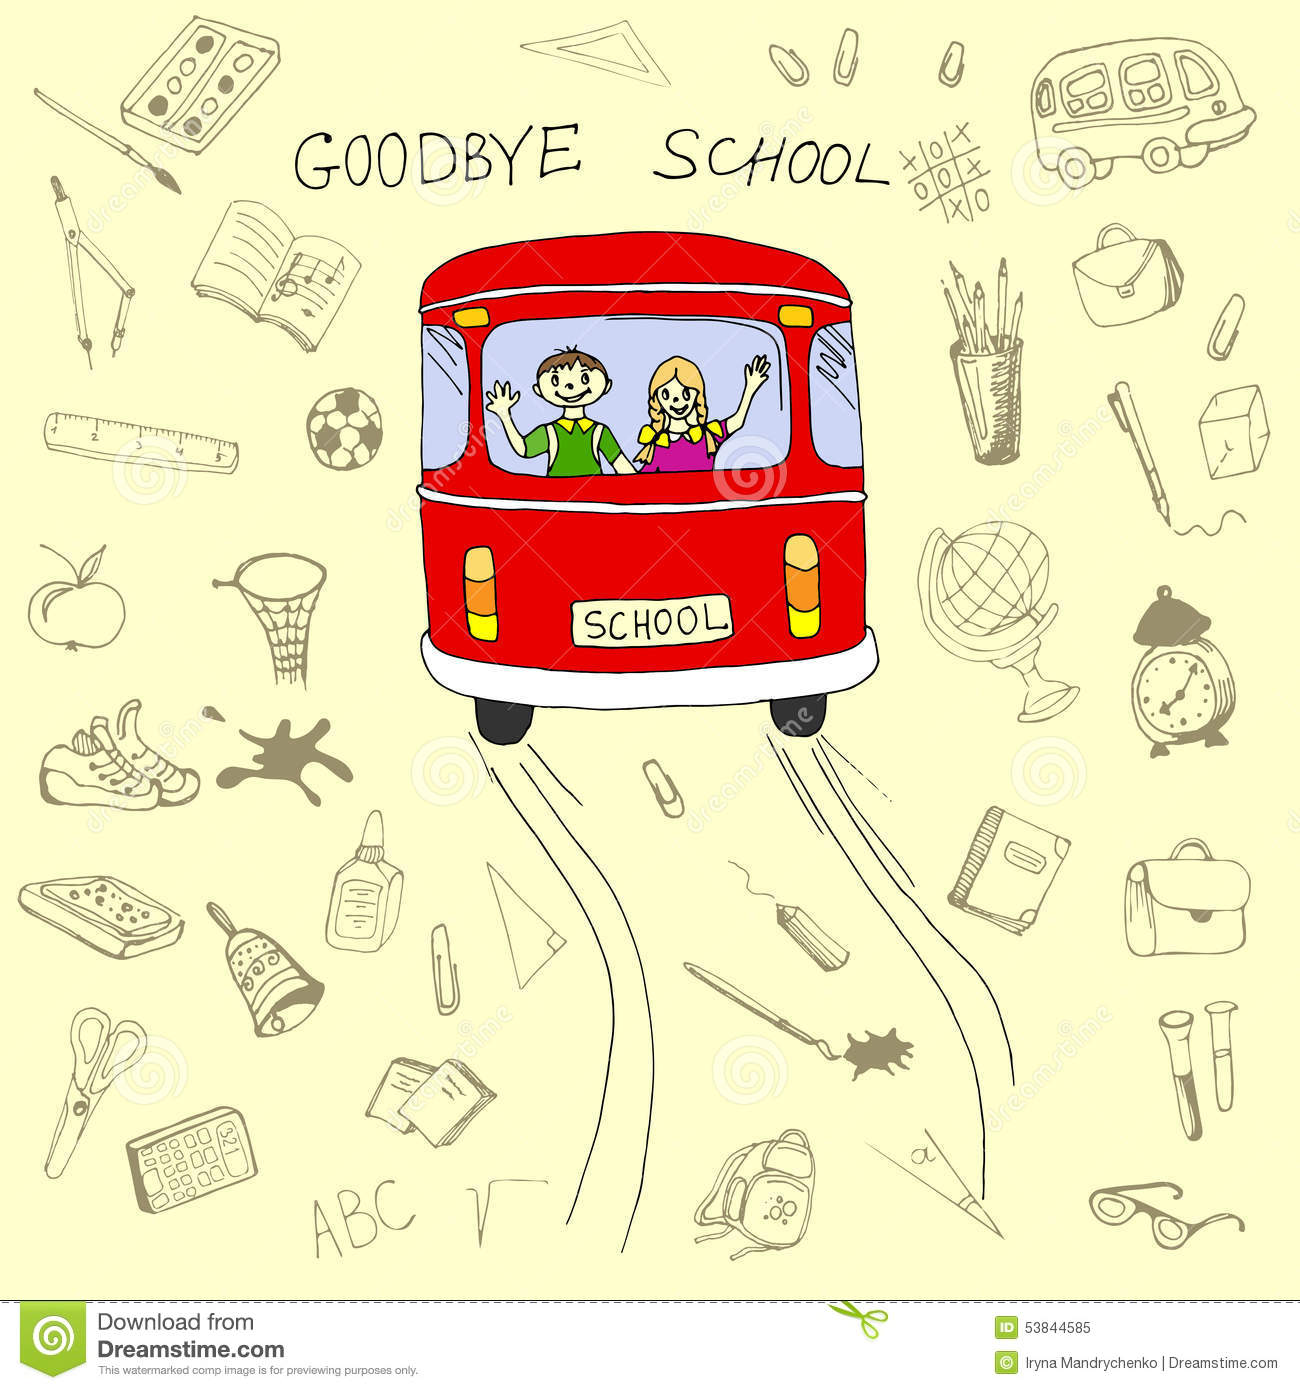 Goodbye School Concept, School Bus And Children In It With